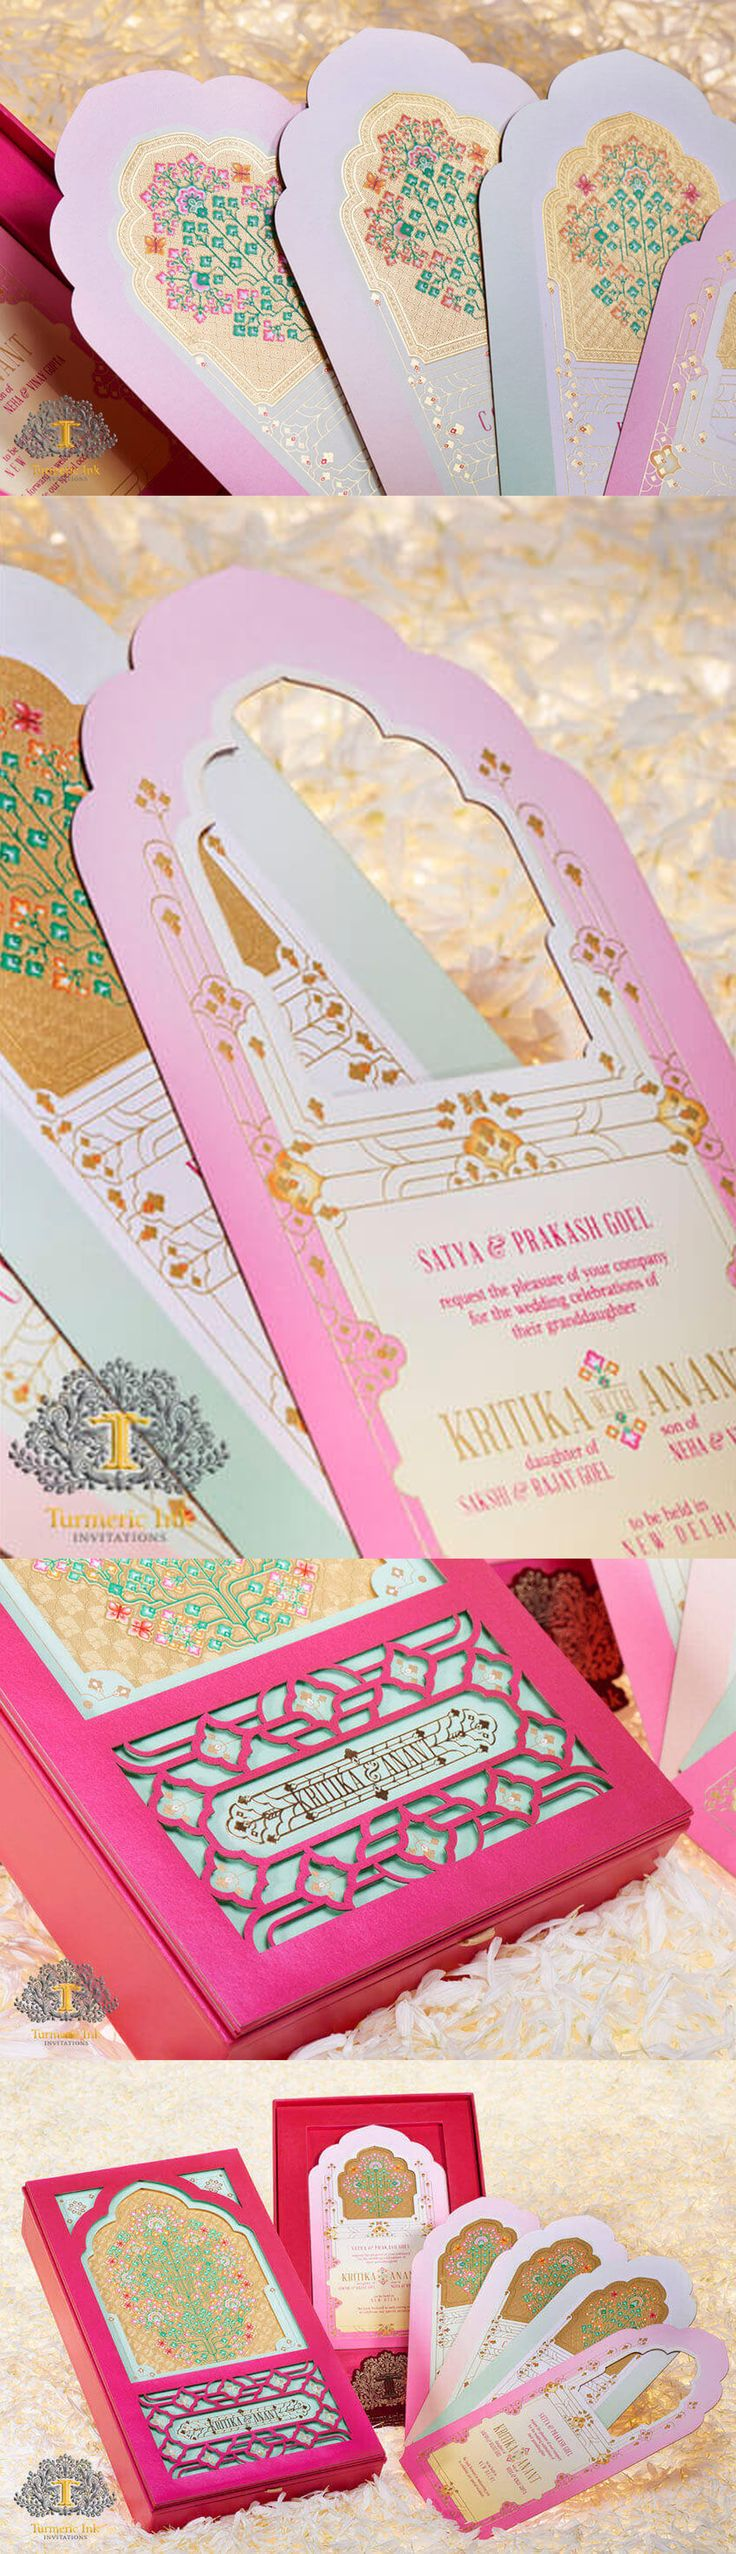 indian wedding cards wordings in hindi%0A invite  invitations  Indian wedding invite  wedding card  bride  indian  bride  bride to be  groom  indian groom  groom to be  stationery  couture  invites